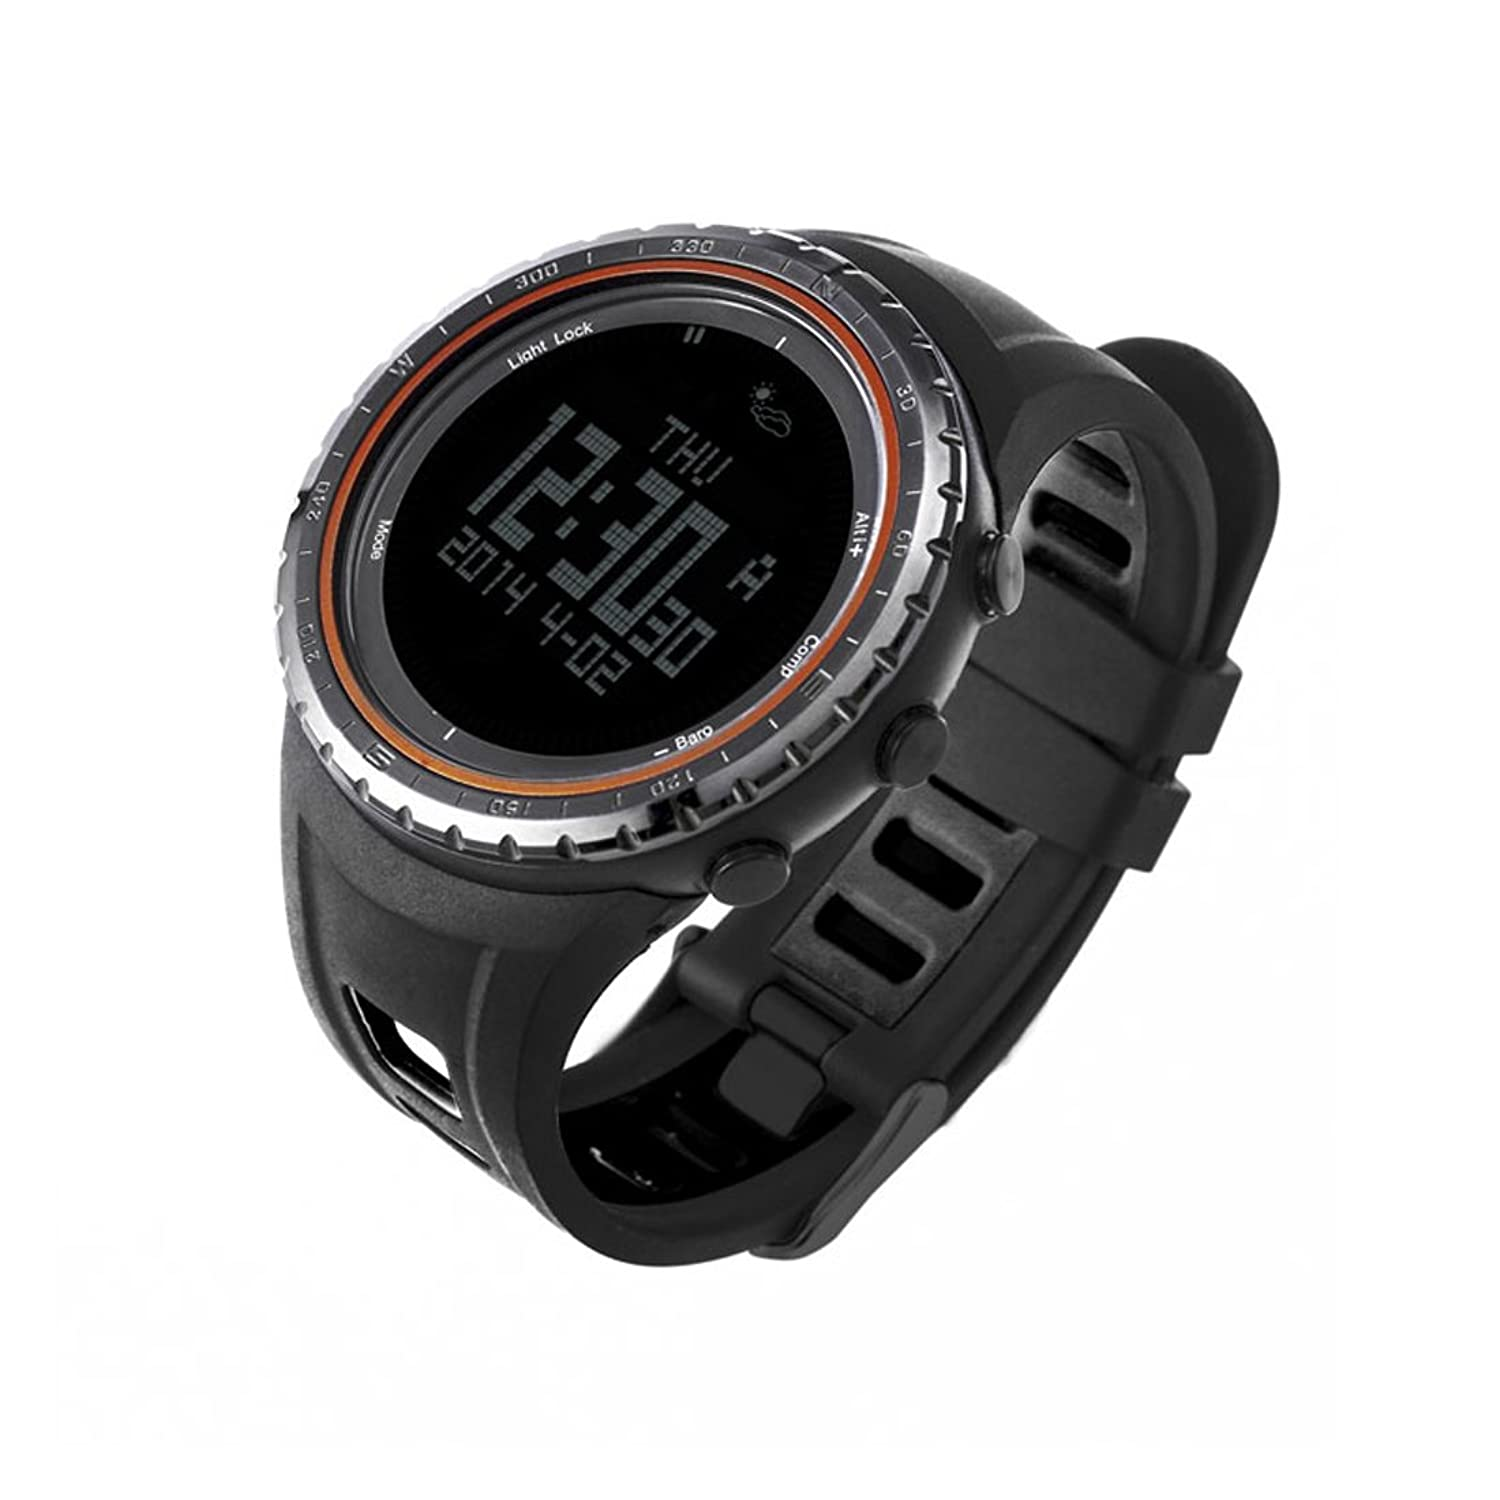 SUNROAD FR801B Multifunction Sports Watch -Pedometer Stopwatch Altimeter Barometer Thermometer CompassTimer LCD